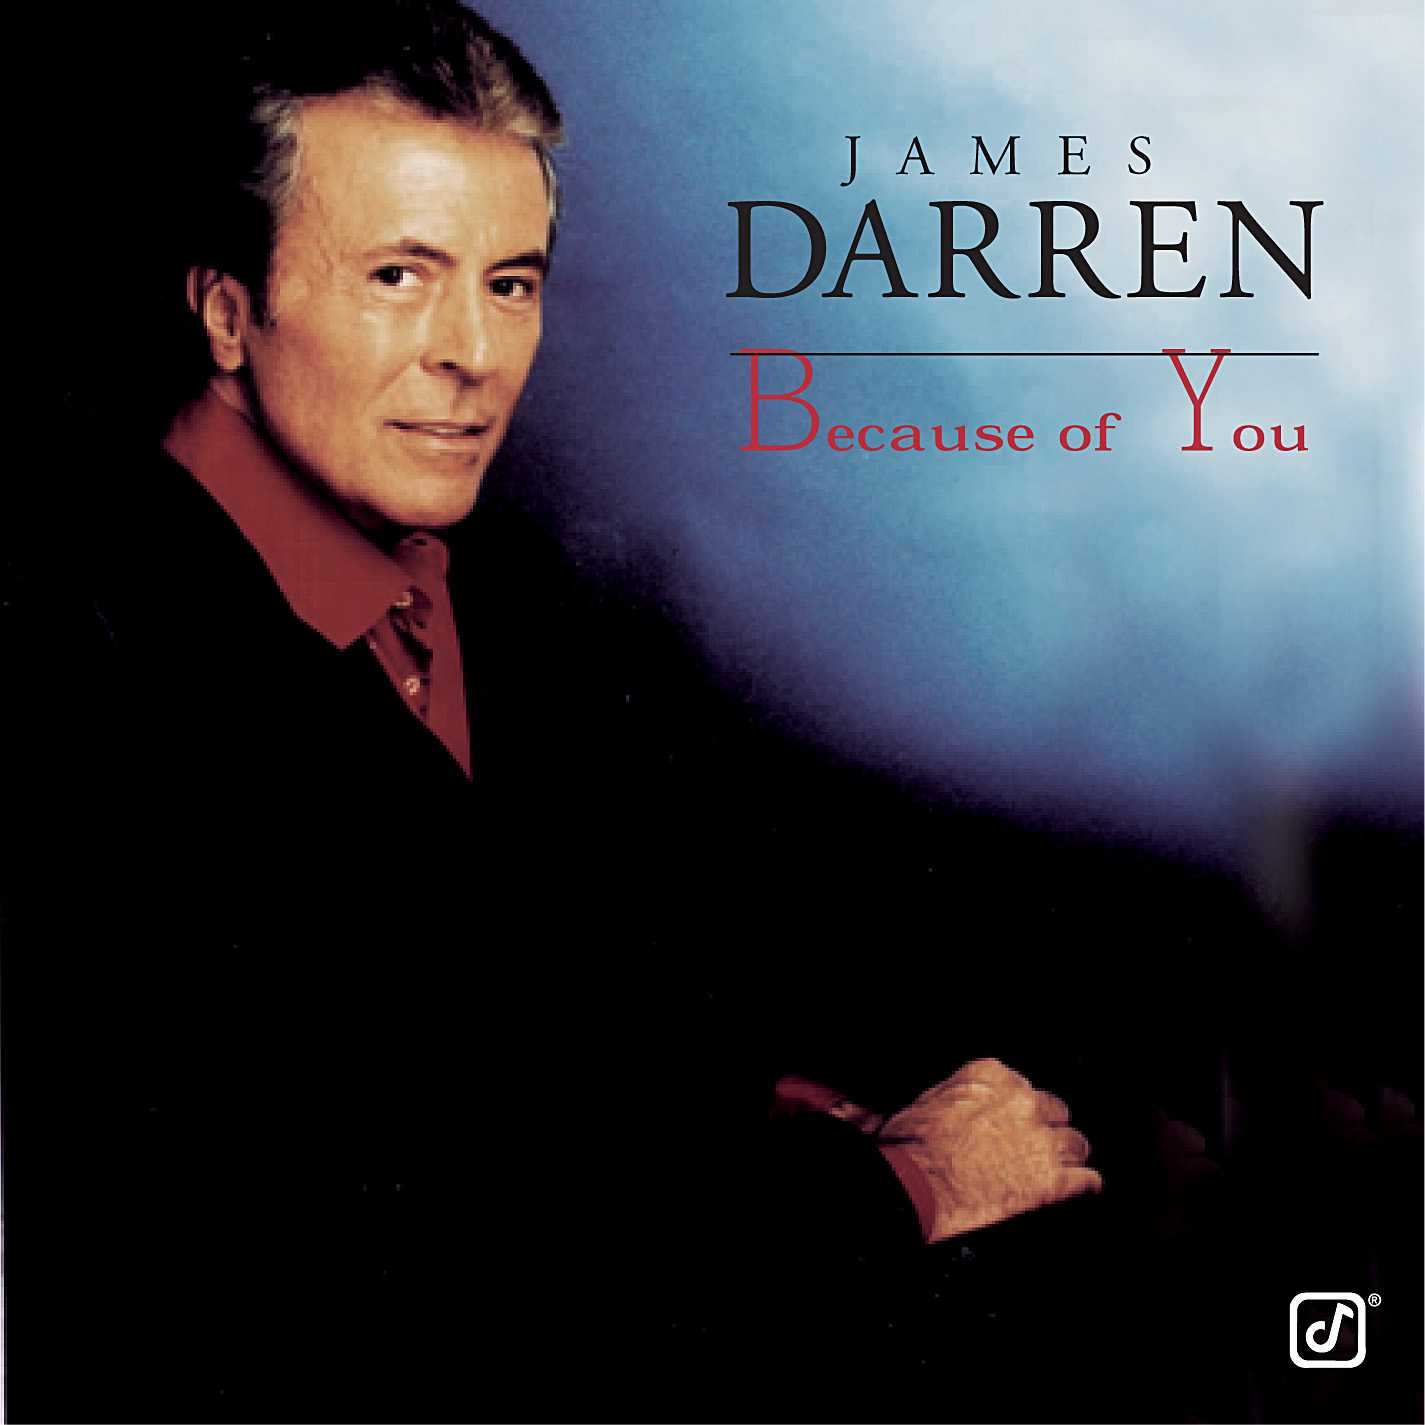 james darren this one from the heart downloadjames darren this one from the heart download, james darren goodbye cruel world, james darren this one's from the heart, james darren, james darren imdb, james darren wikipedia, james darren star trek, james darren discography, james darren songs youtube, james darren come fly with me, james darren all, james darren pics, james darren today, james darren's son, james darren net worth, james darren songs, james darren age, james darren gidget, james darren now, james darren youtube